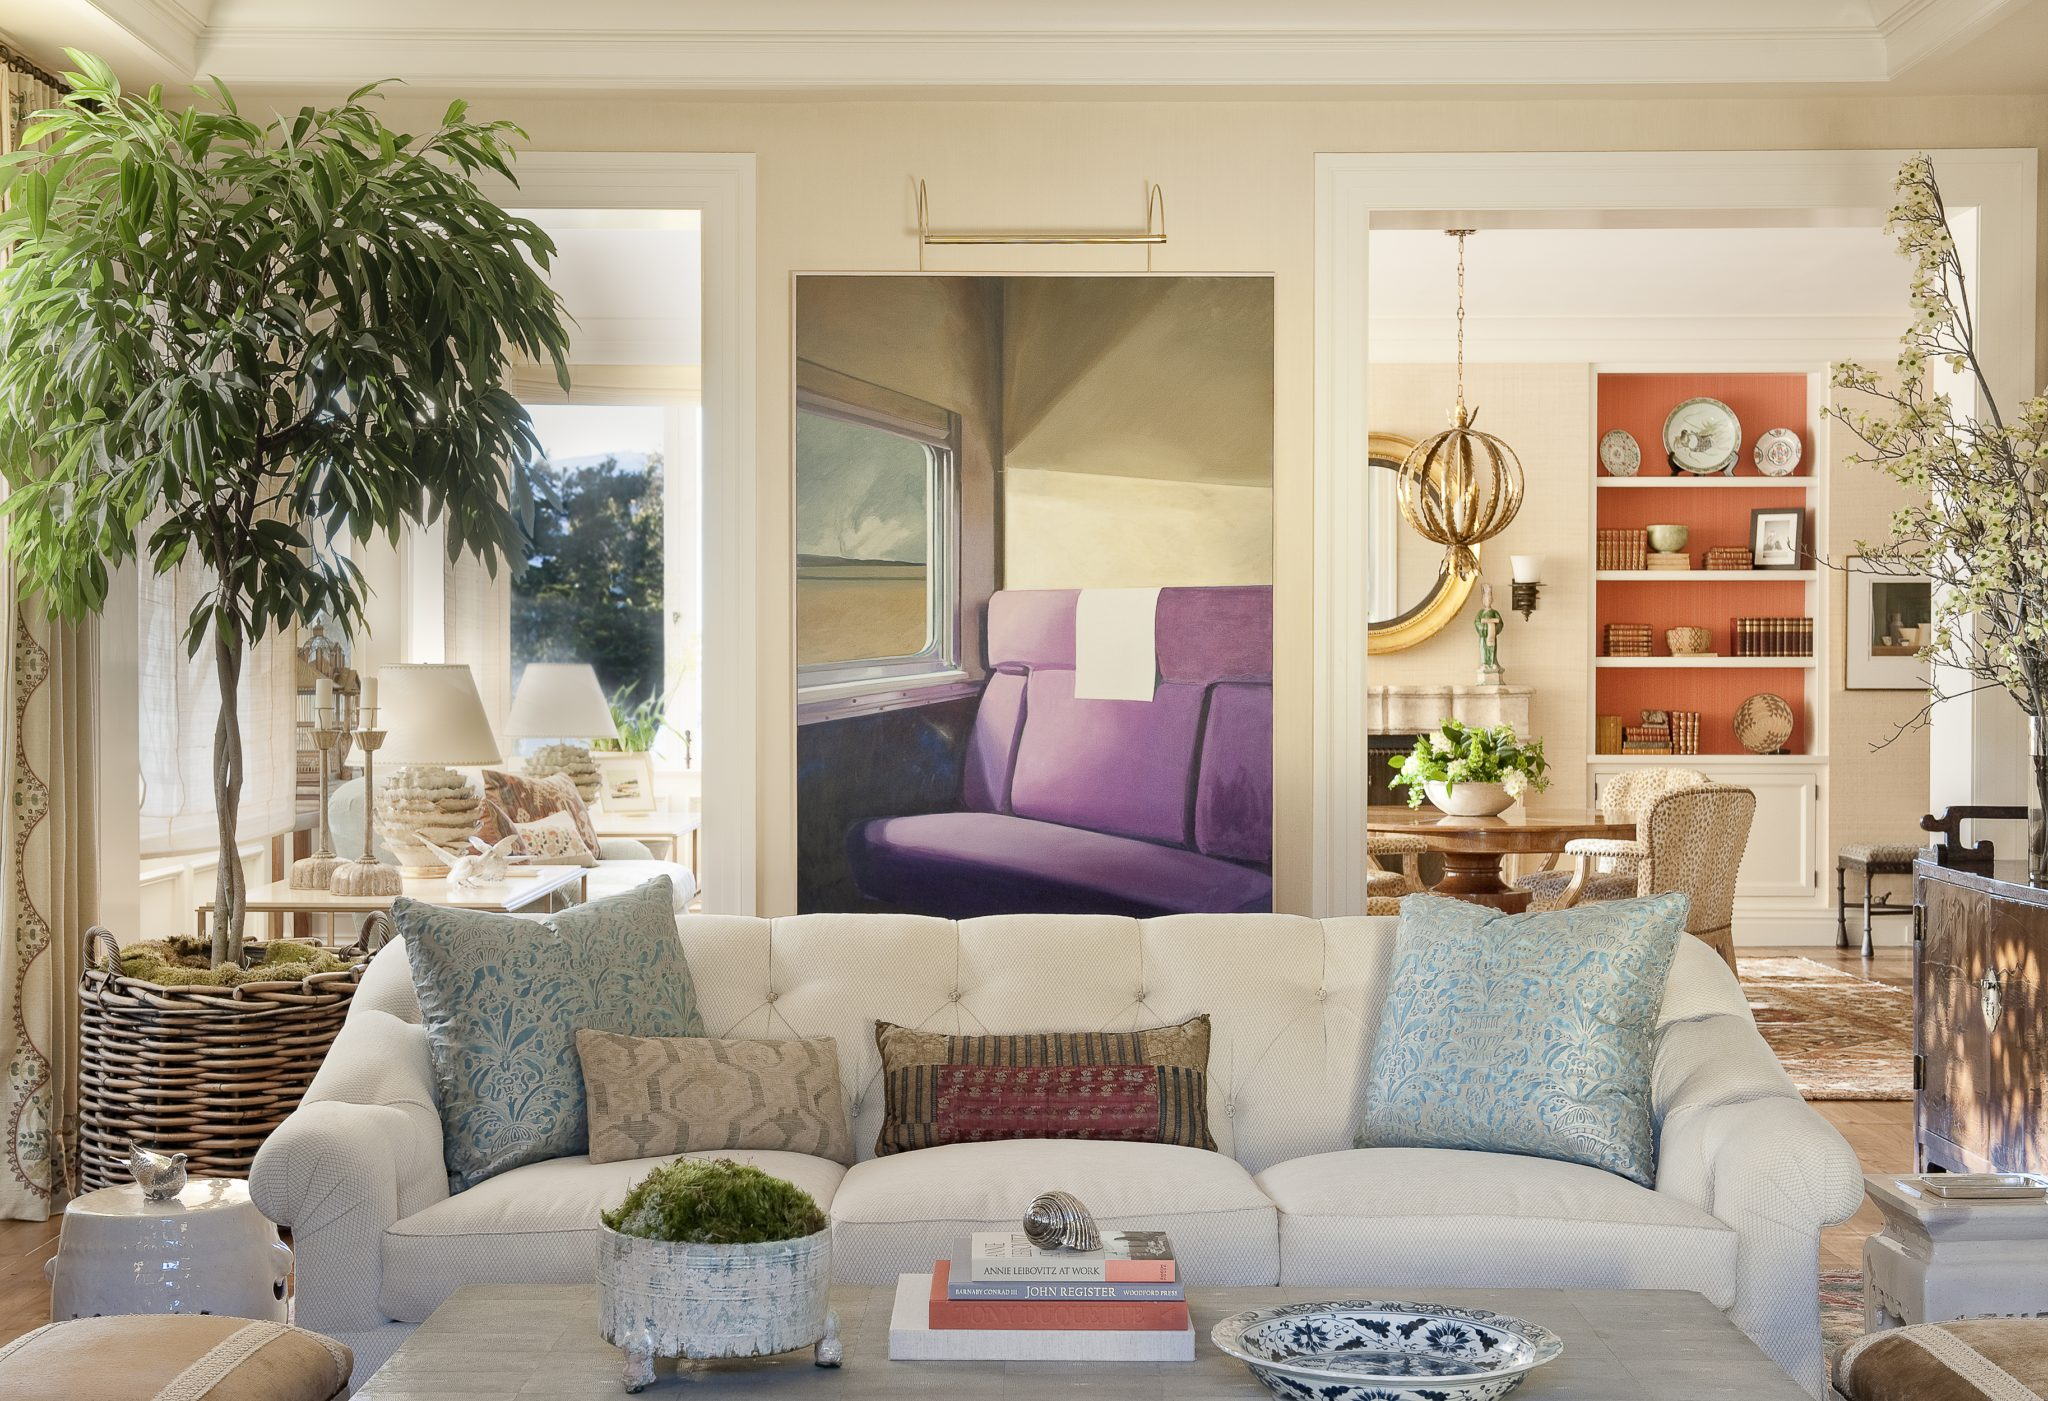 """""""A thoughtful edit is always a good frame of mind while focusing on a handful of items about which you feel strongly,"""" says Tucker. In the home, acolorful oil on canvas calledTrain Seatby John Register brings life to the living room. In front of the painting, thecustom sofa designed by Tucker & Marks is upholstered in a cotton-blend fabric from Rogers & Goffigon with tape trim by Samuel & Sons. The blue-and-gold pillows decorating the sofa add a chic baroque note to the decor; thefabric is from Fortuny and the fan-edge trim, Samuel & Sons."""